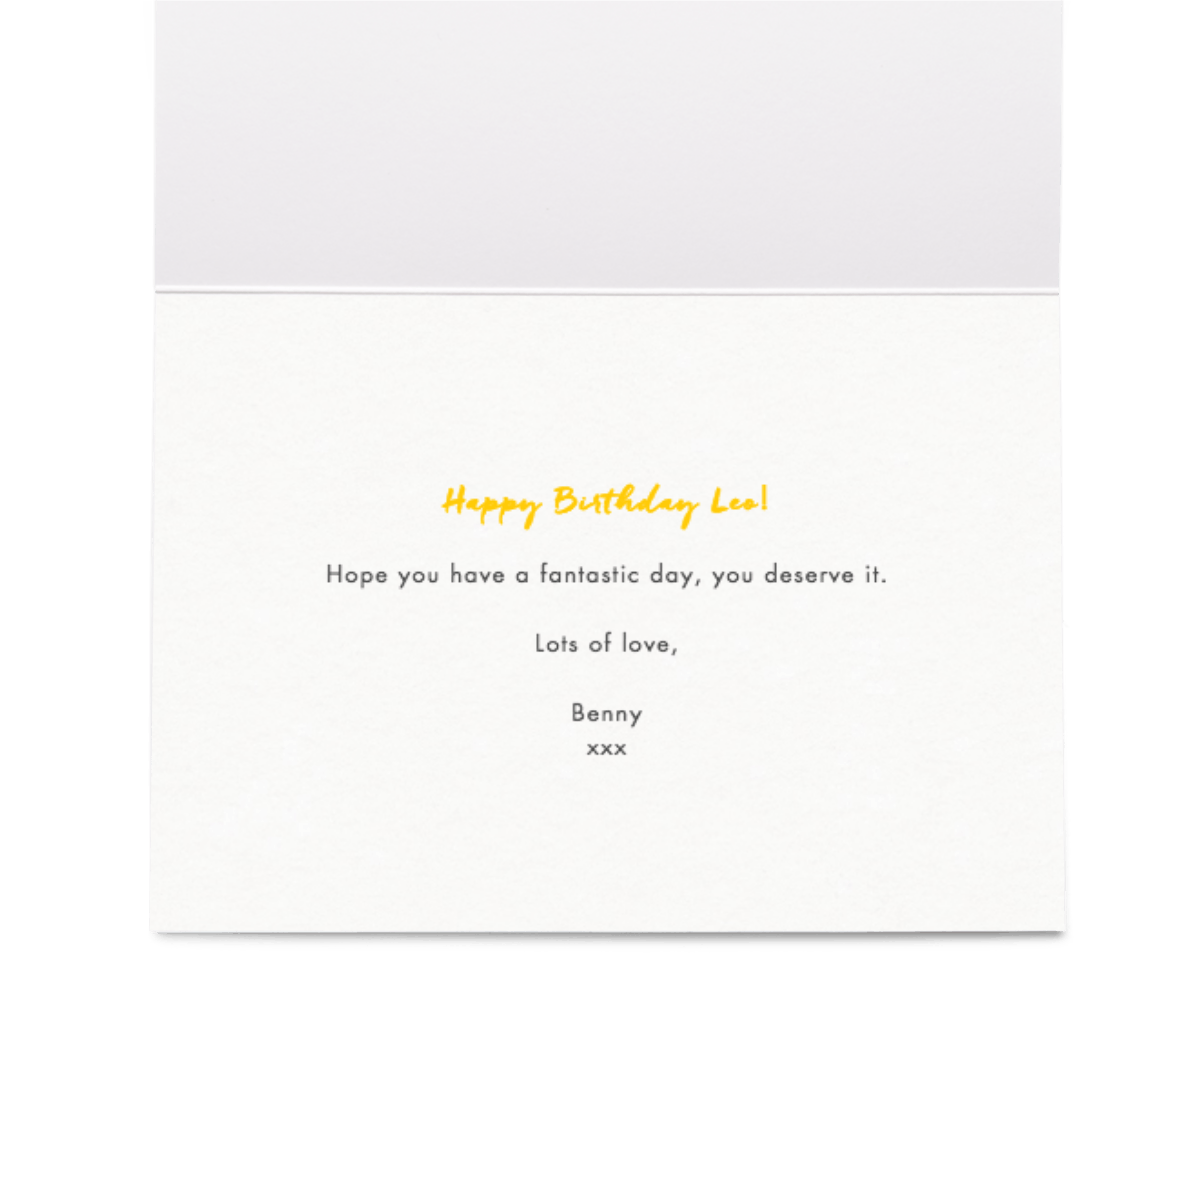 Https%3a%2f%2fwww.papier.com%2fproduct image%2f53526%2f20%2fcandle birthday 12880 inside 1542218962.png?ixlib=rb 1.1